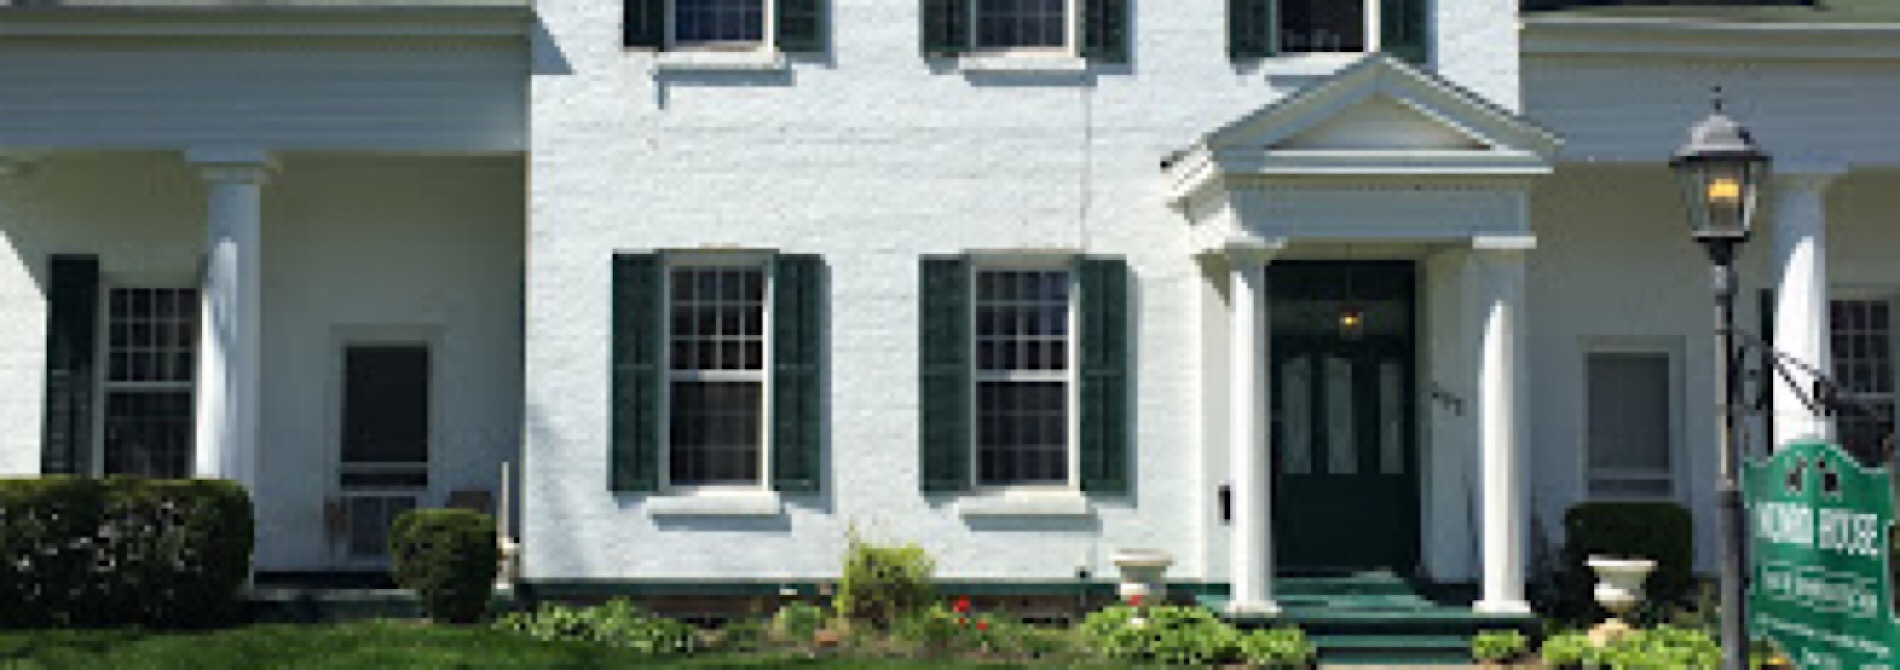 munro house greek revival style home